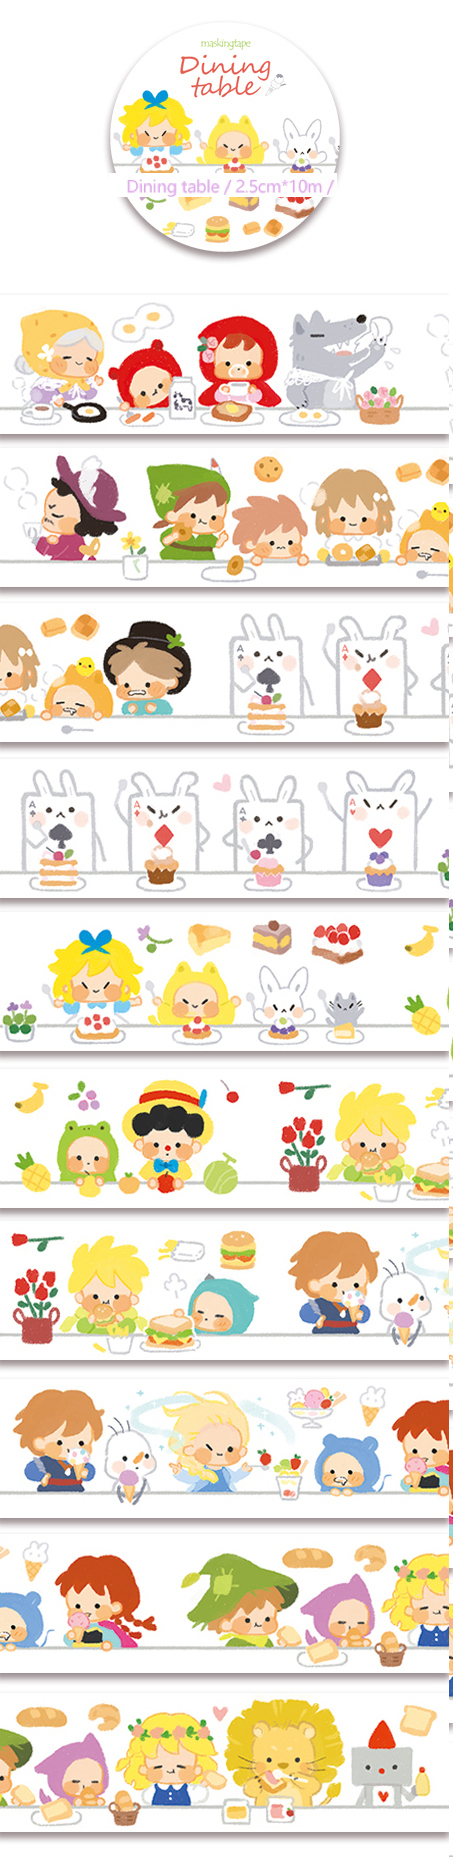 Pre-Order 1 Roll of Limited Edition Washi Tape: Fairytale Dinning Table